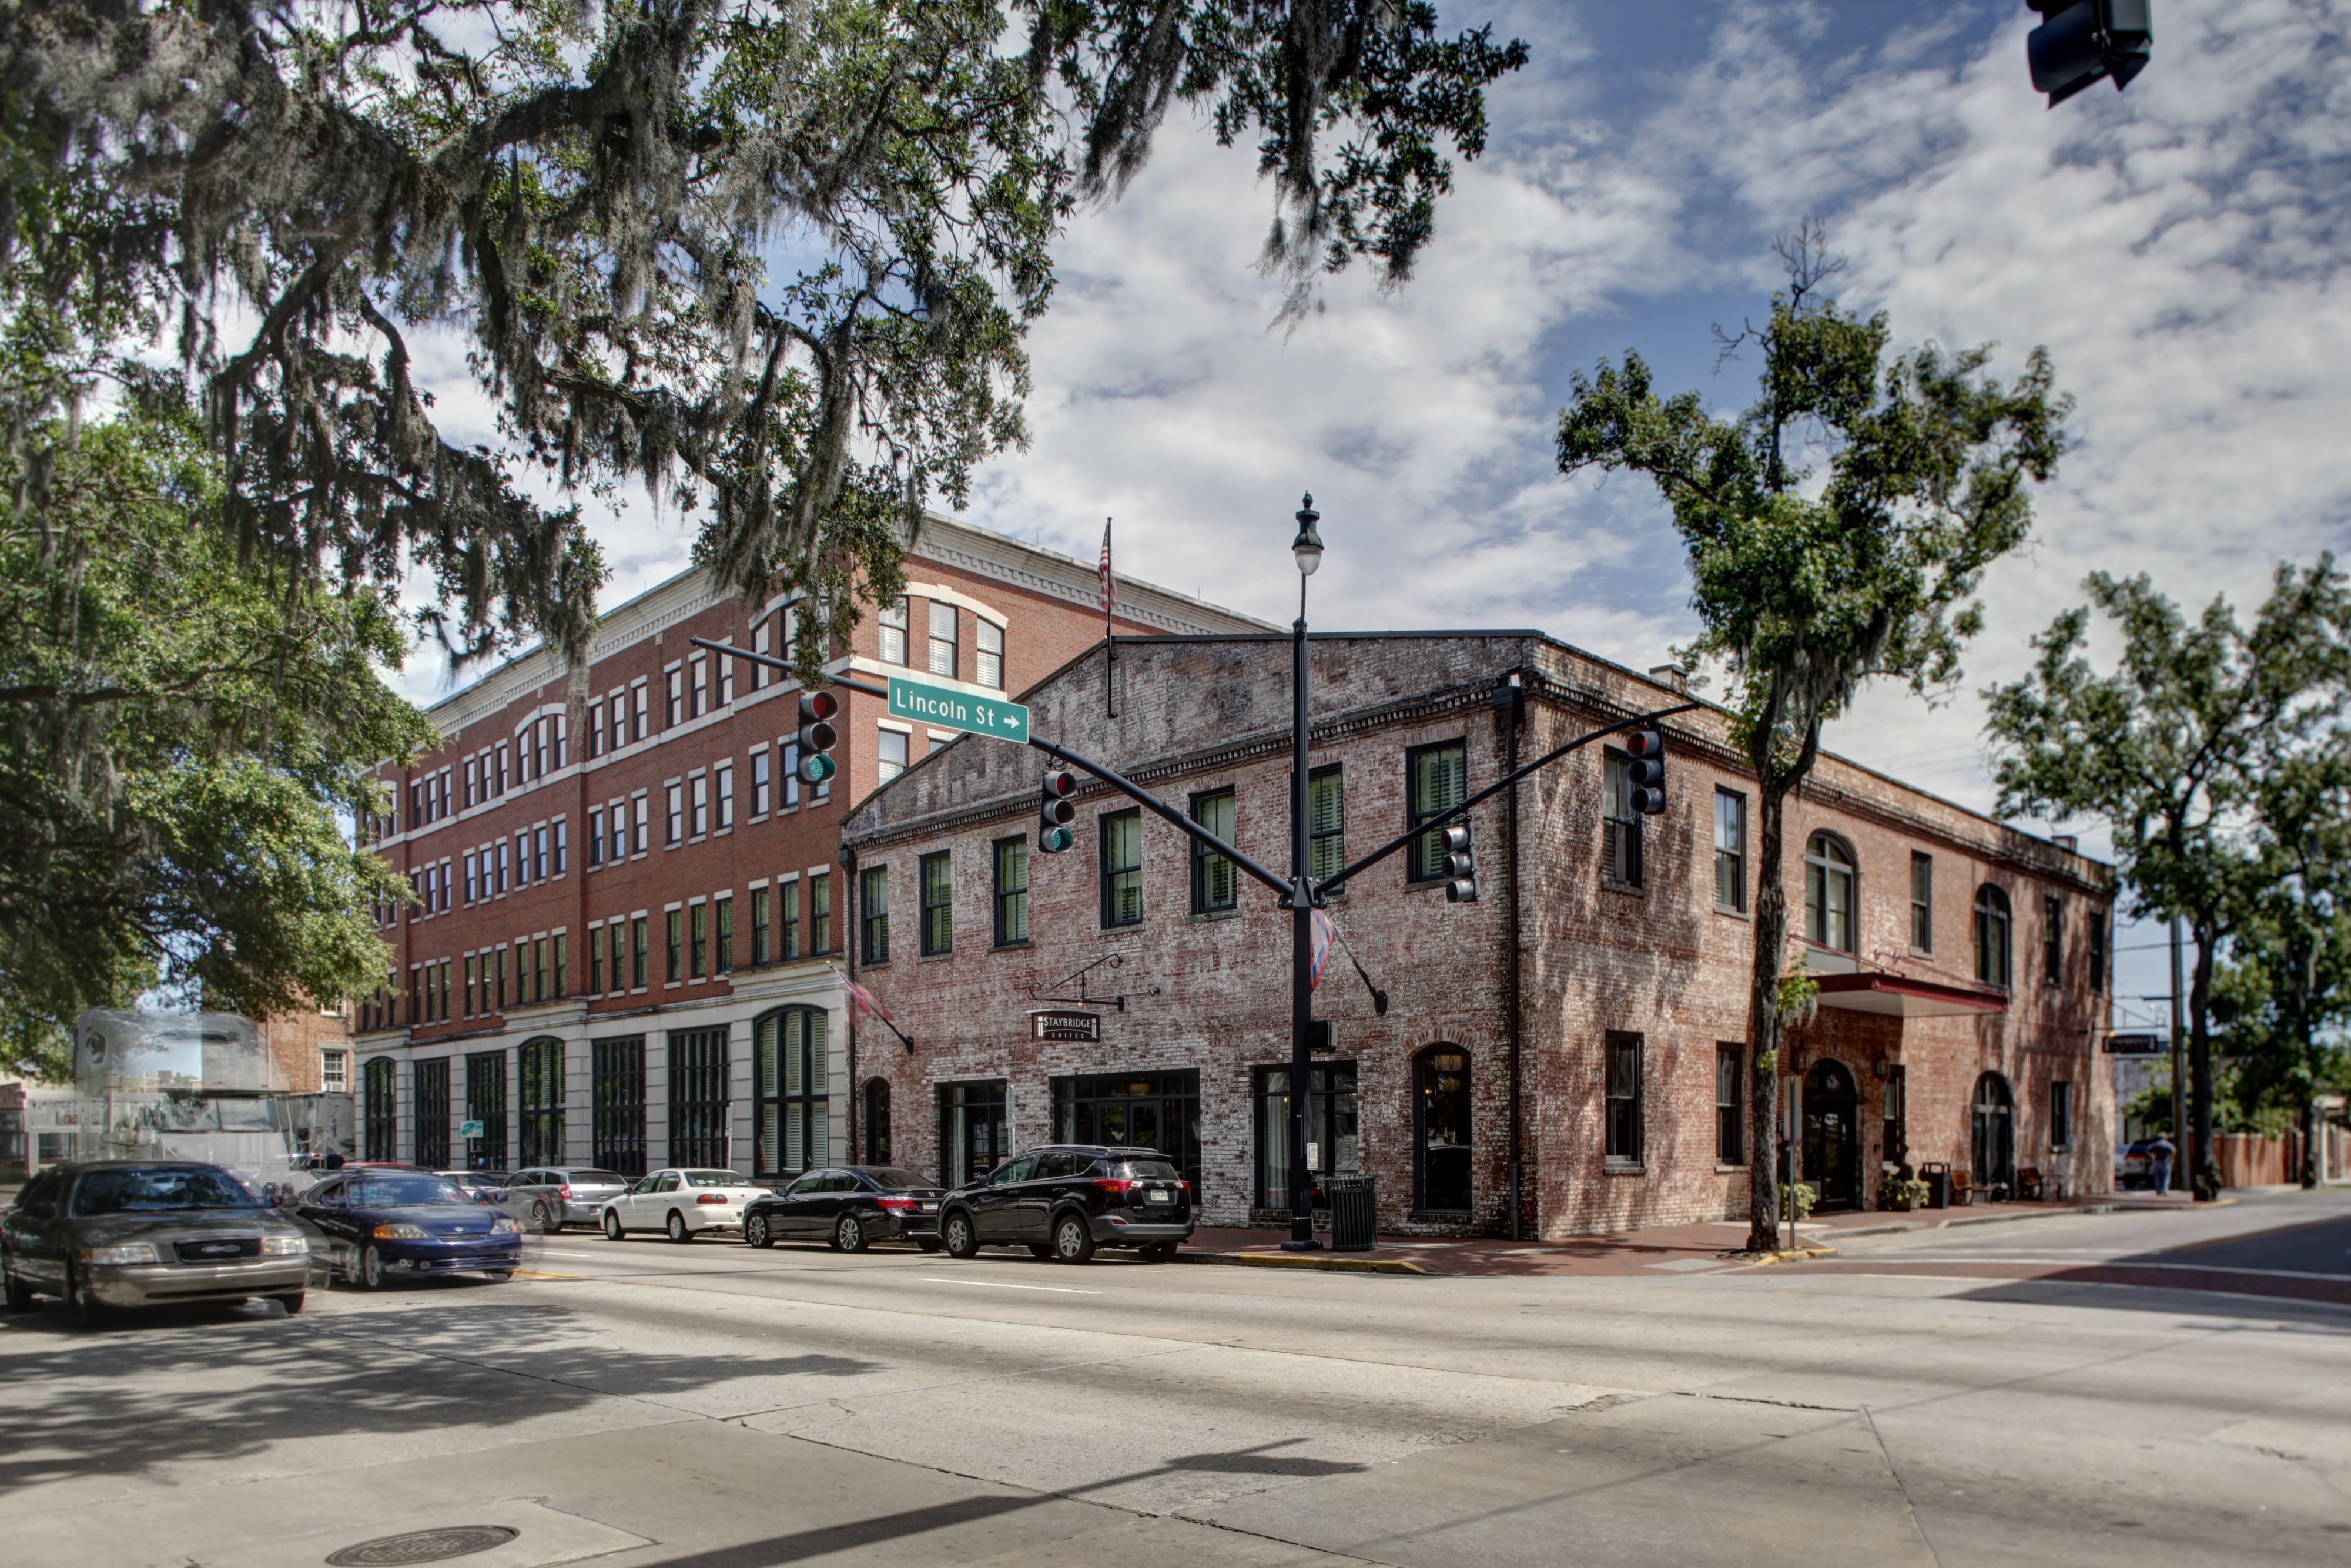 Staybridge Suites Savannah Historic District image 5